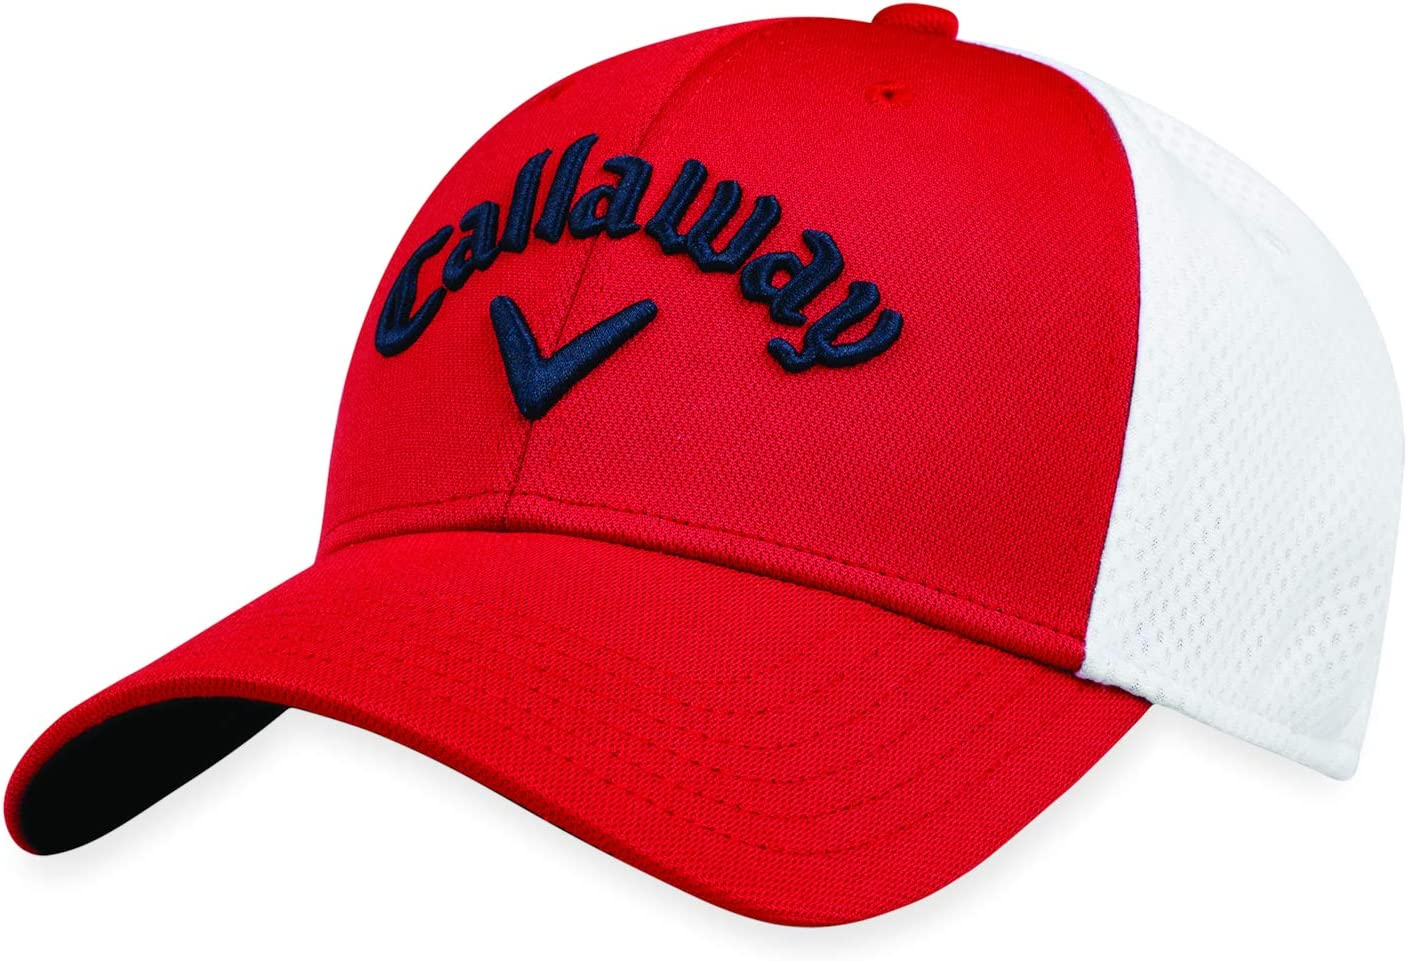 Callaway 2017 Tour Stretch Fitted Hat